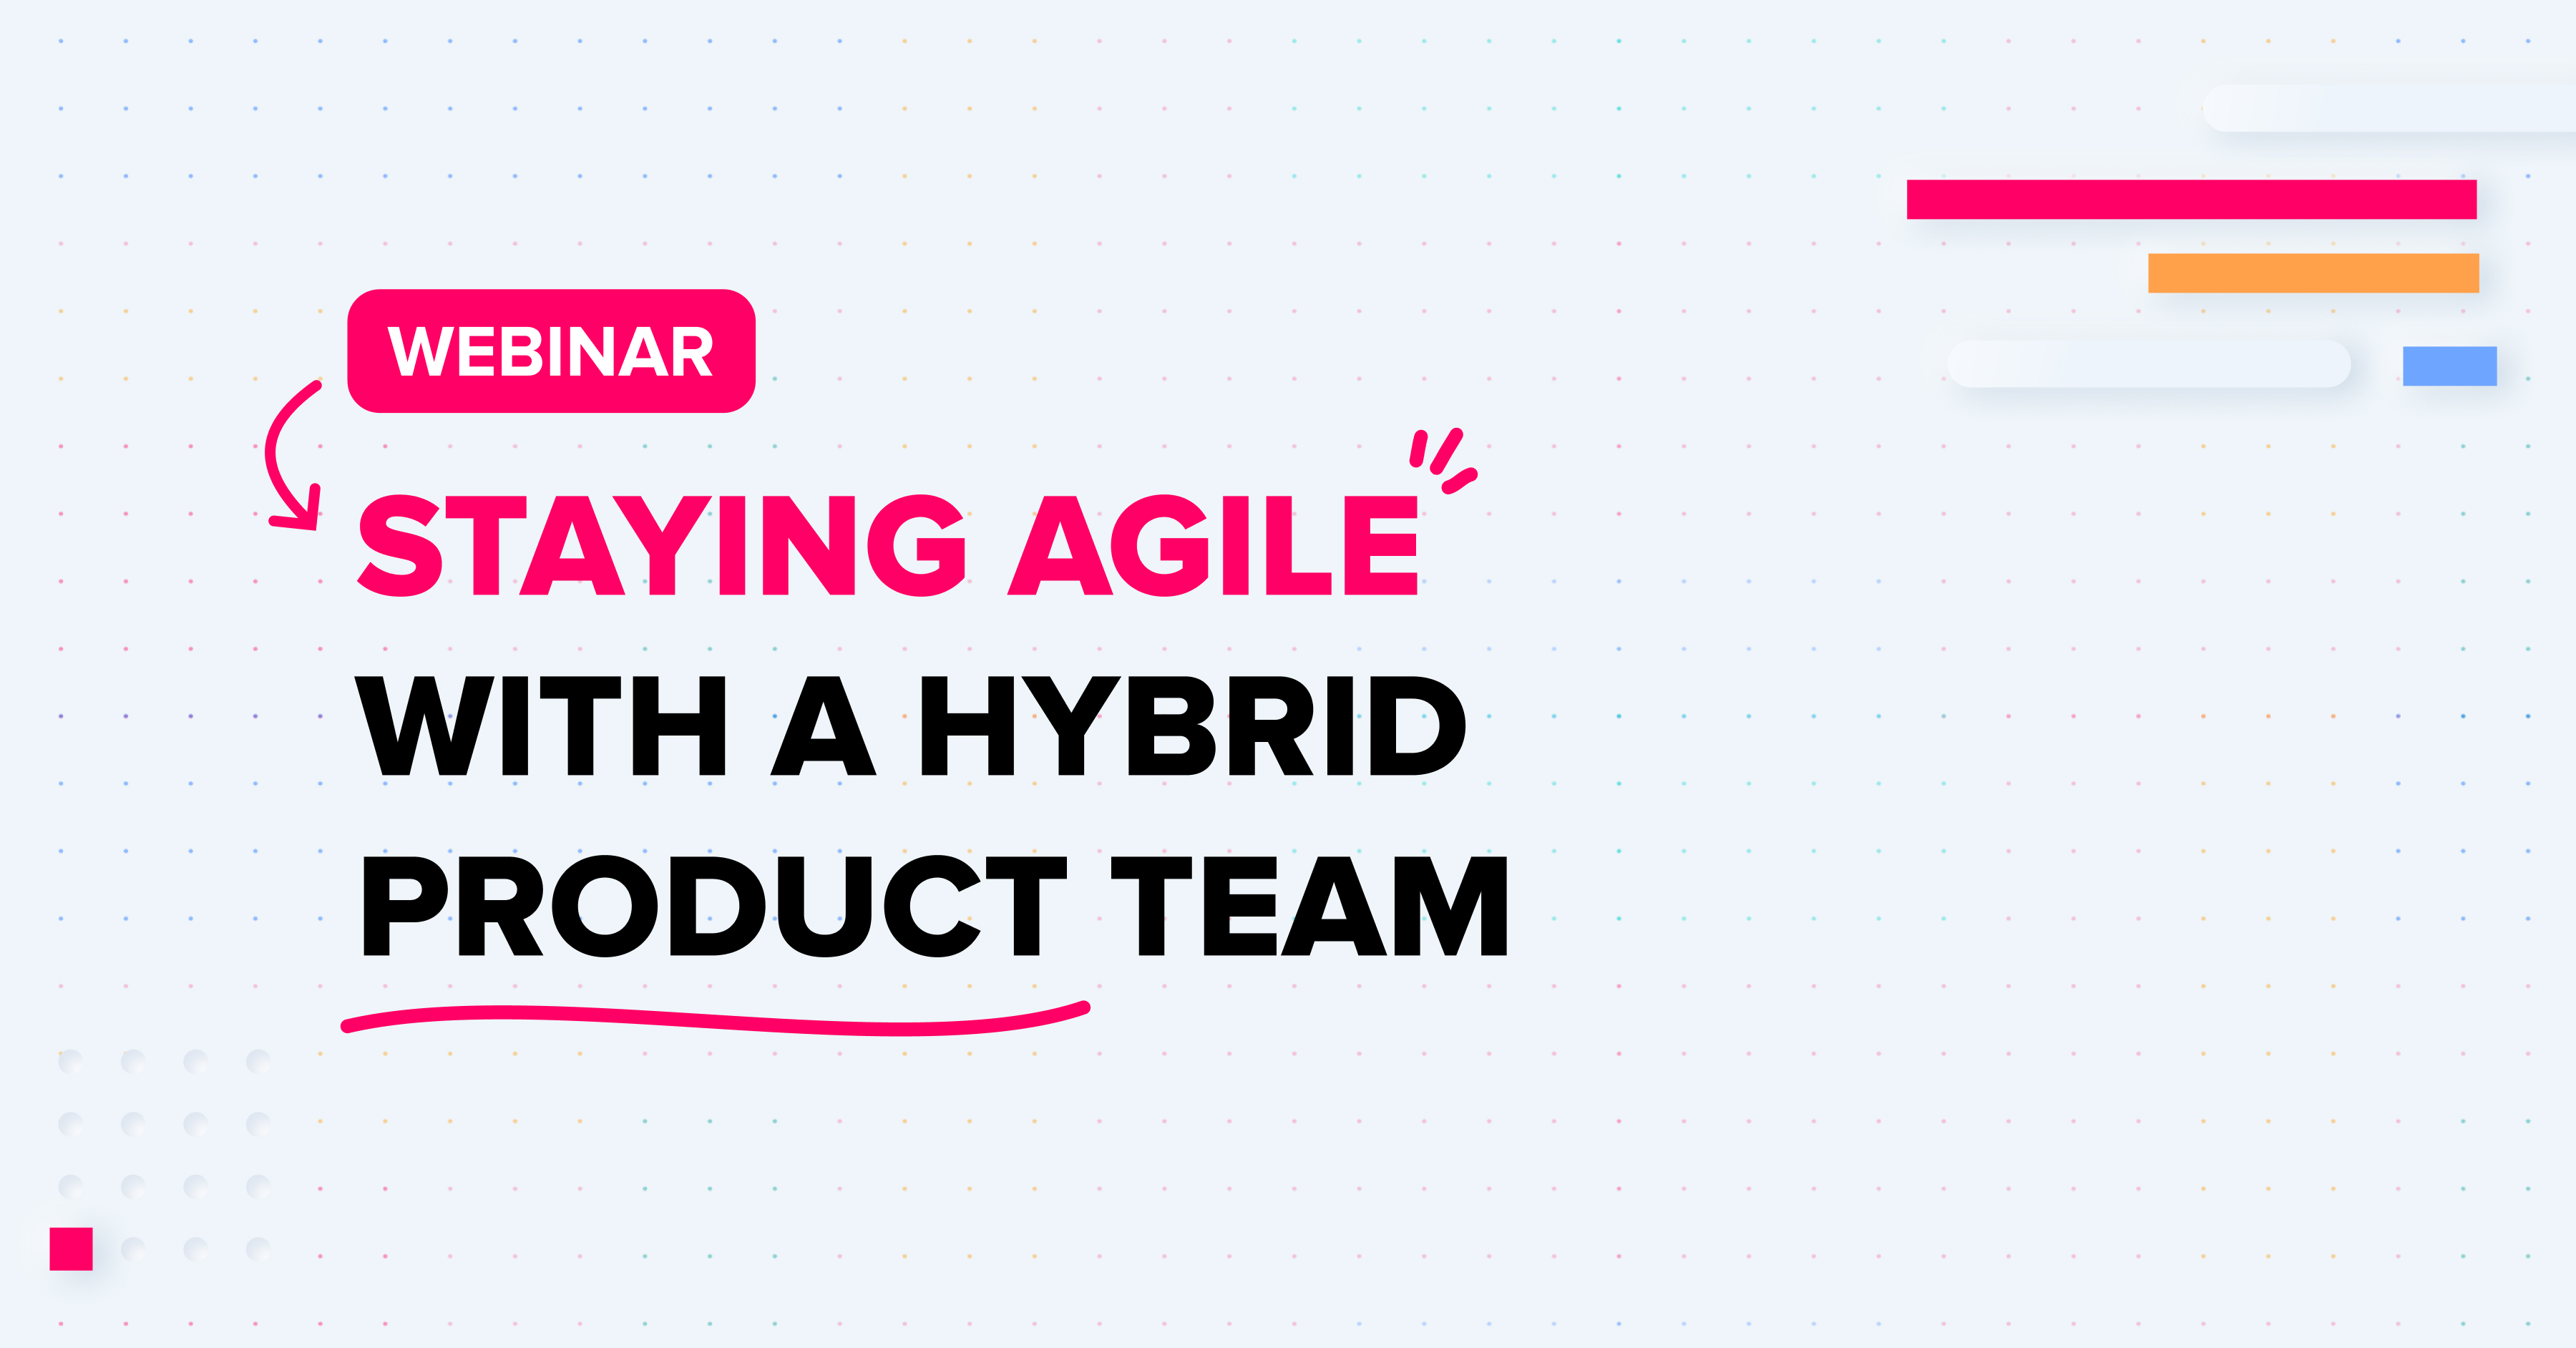 Staying Agile With a Hybrid Product Team